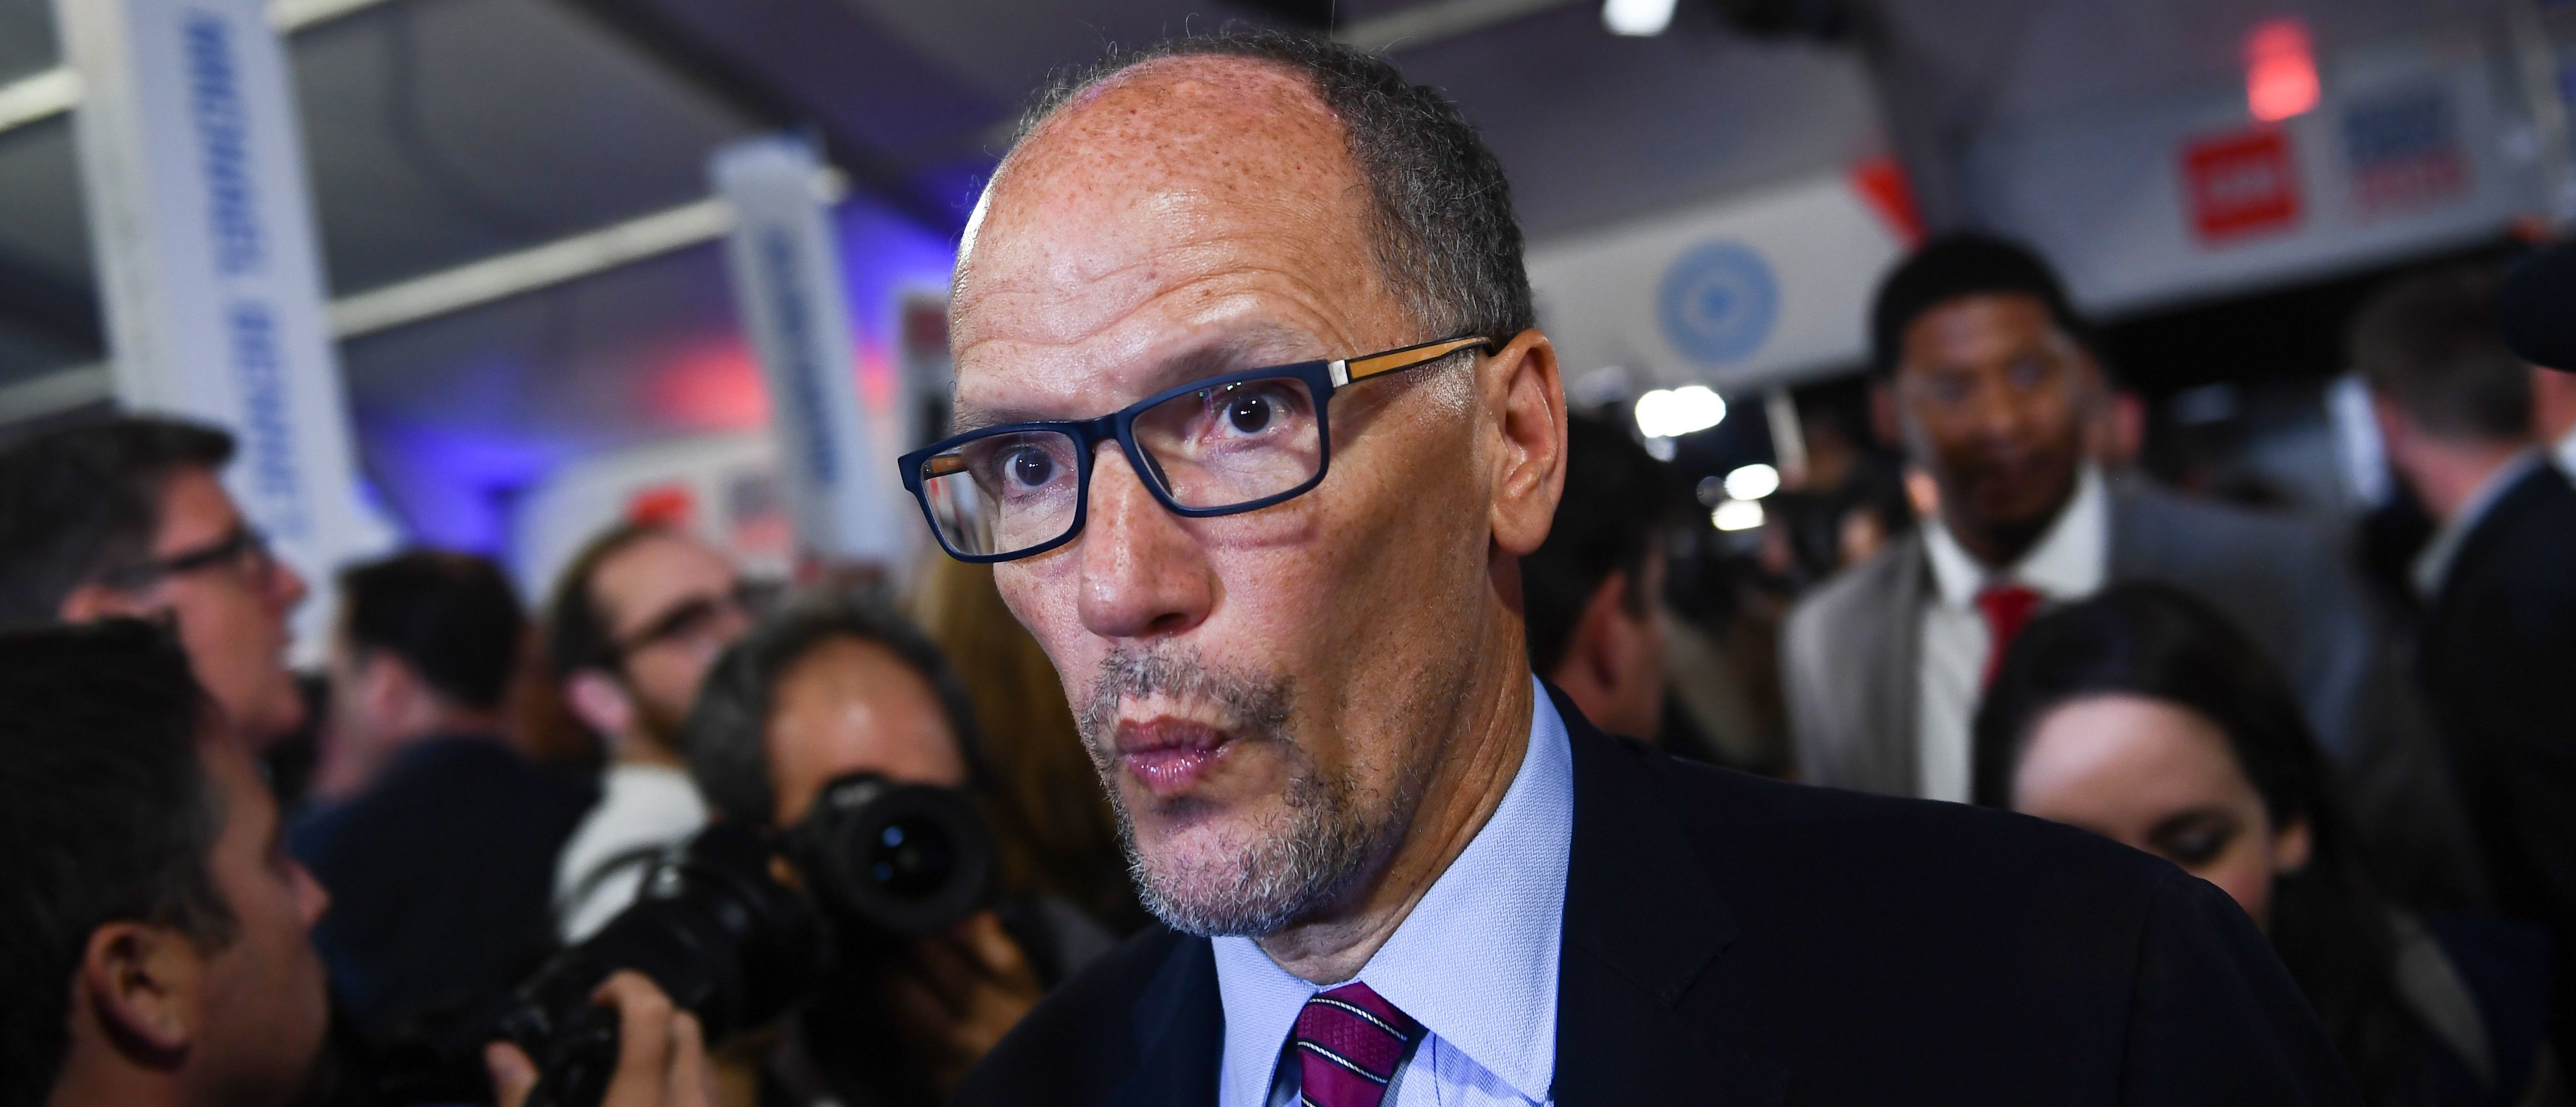 Tom Perez Doing Fundraisers In Mexico, As DNC Struggles To Raise Money